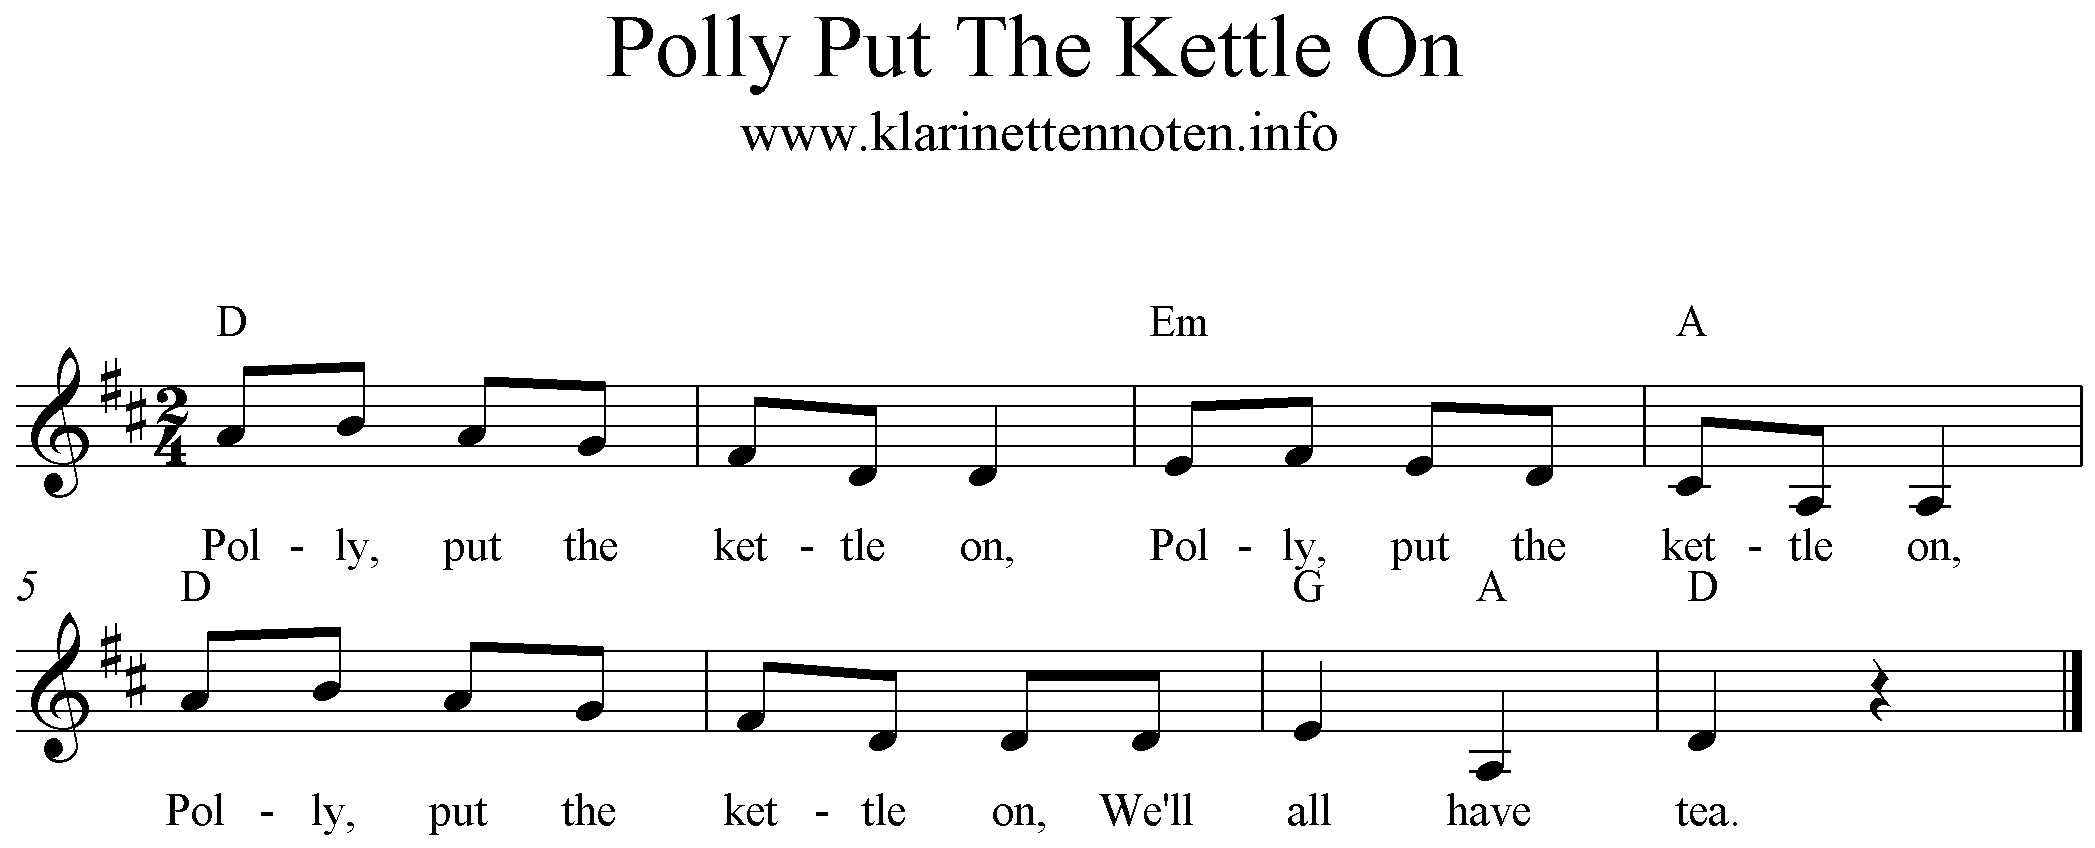 Polly Put The Kettle On, D-Major, Clarinet